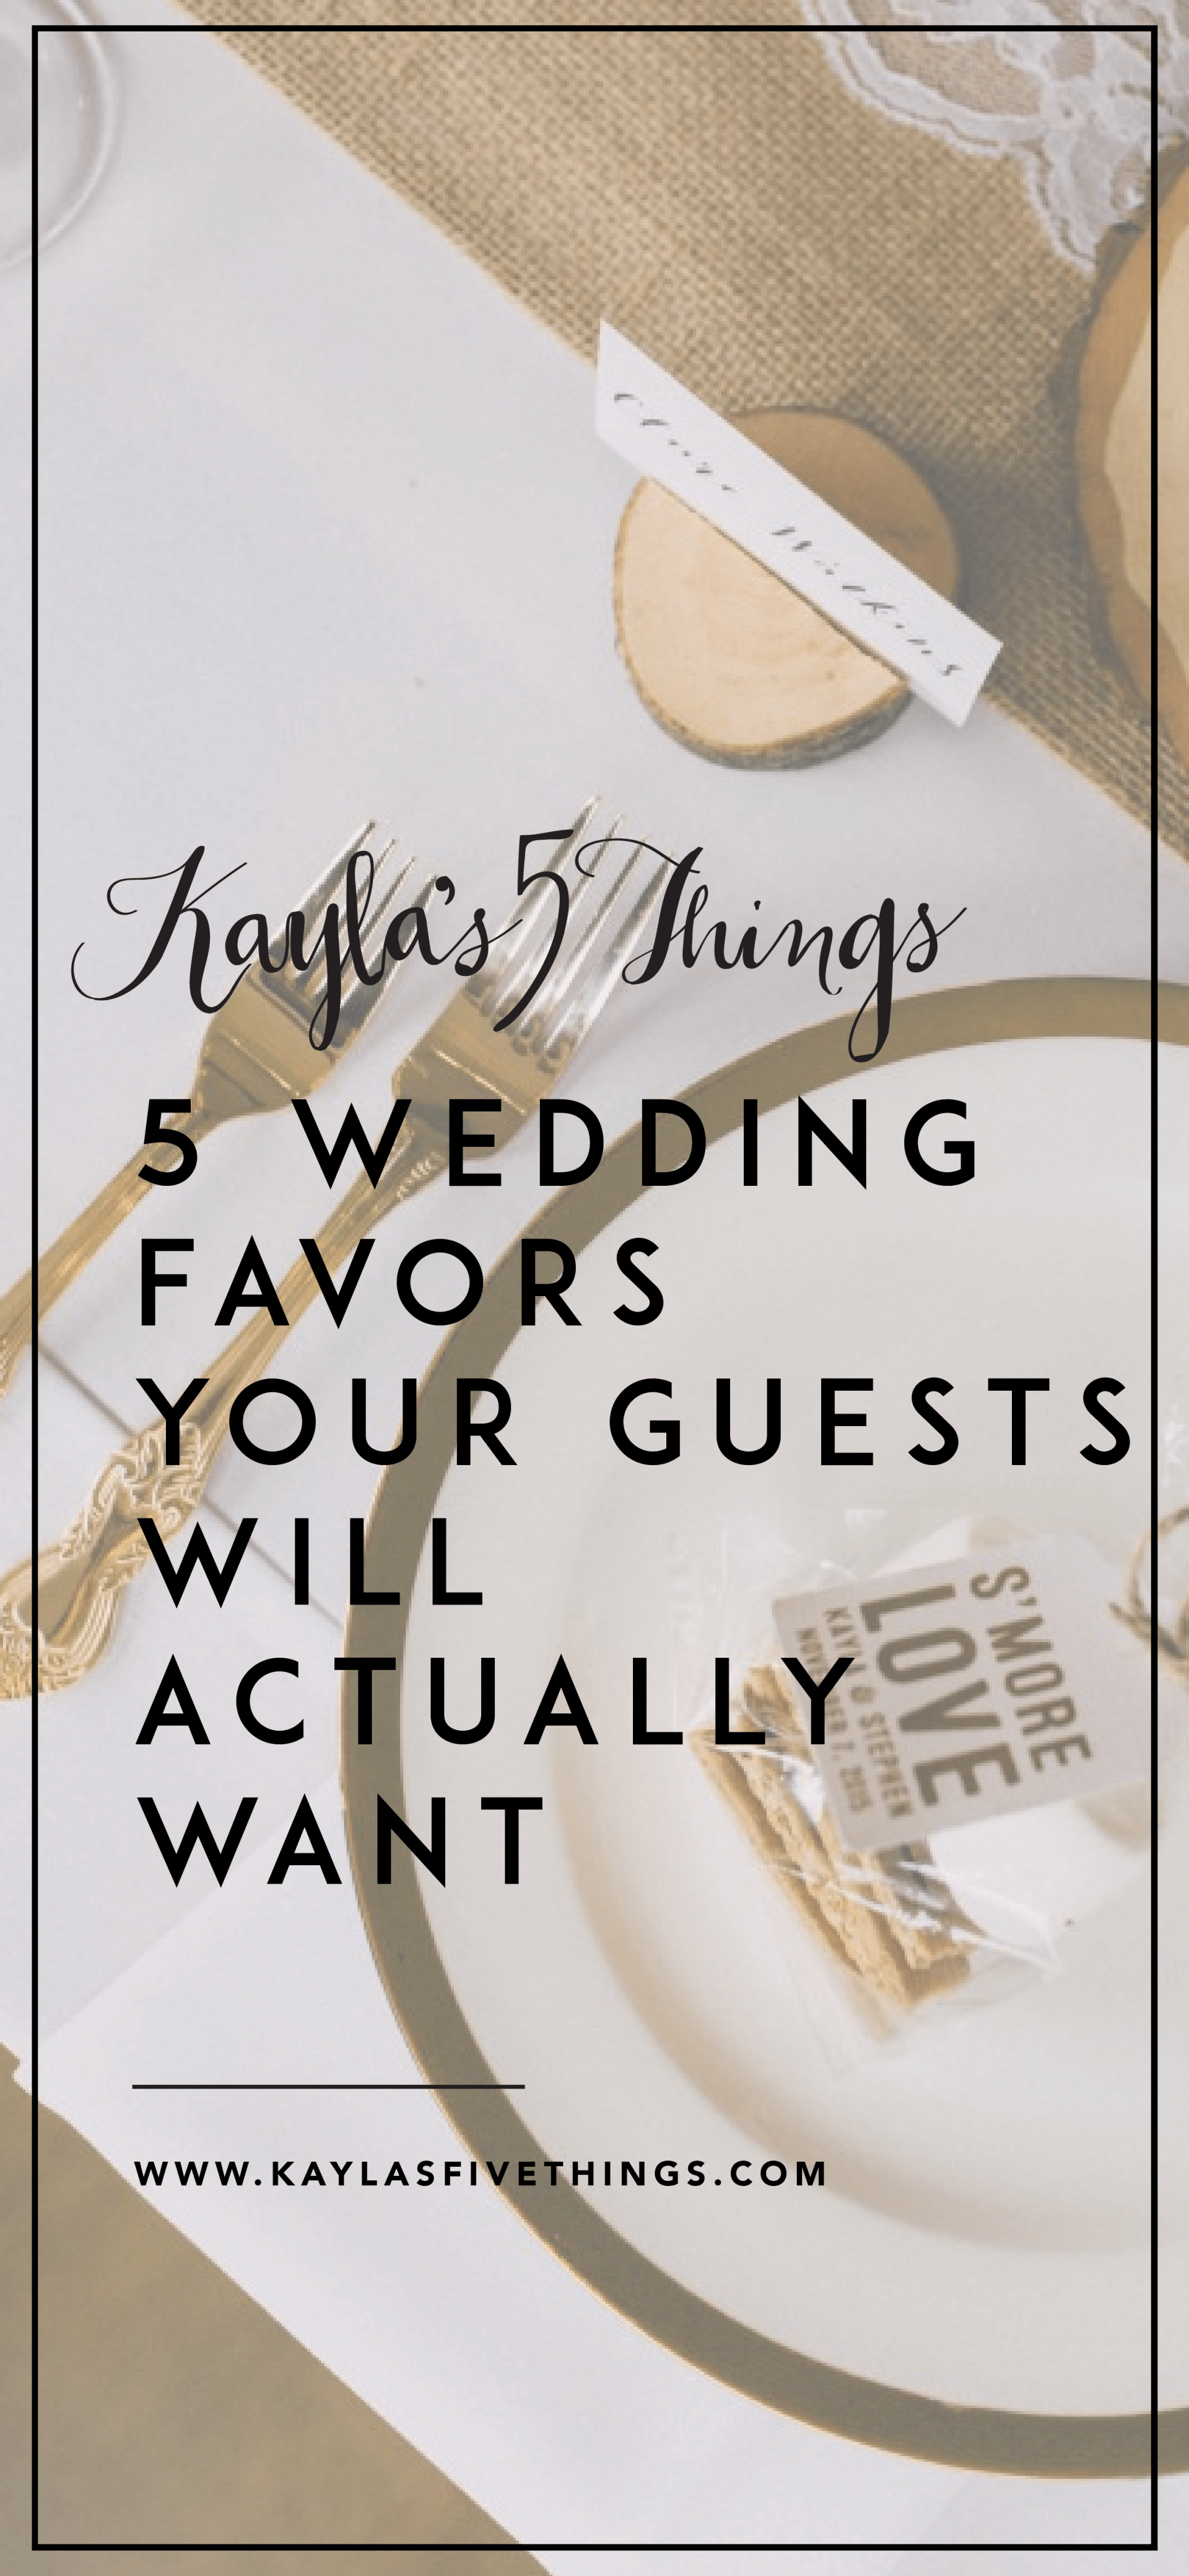 5 wedding favors your guests will actually want | Favors, Weddings ...